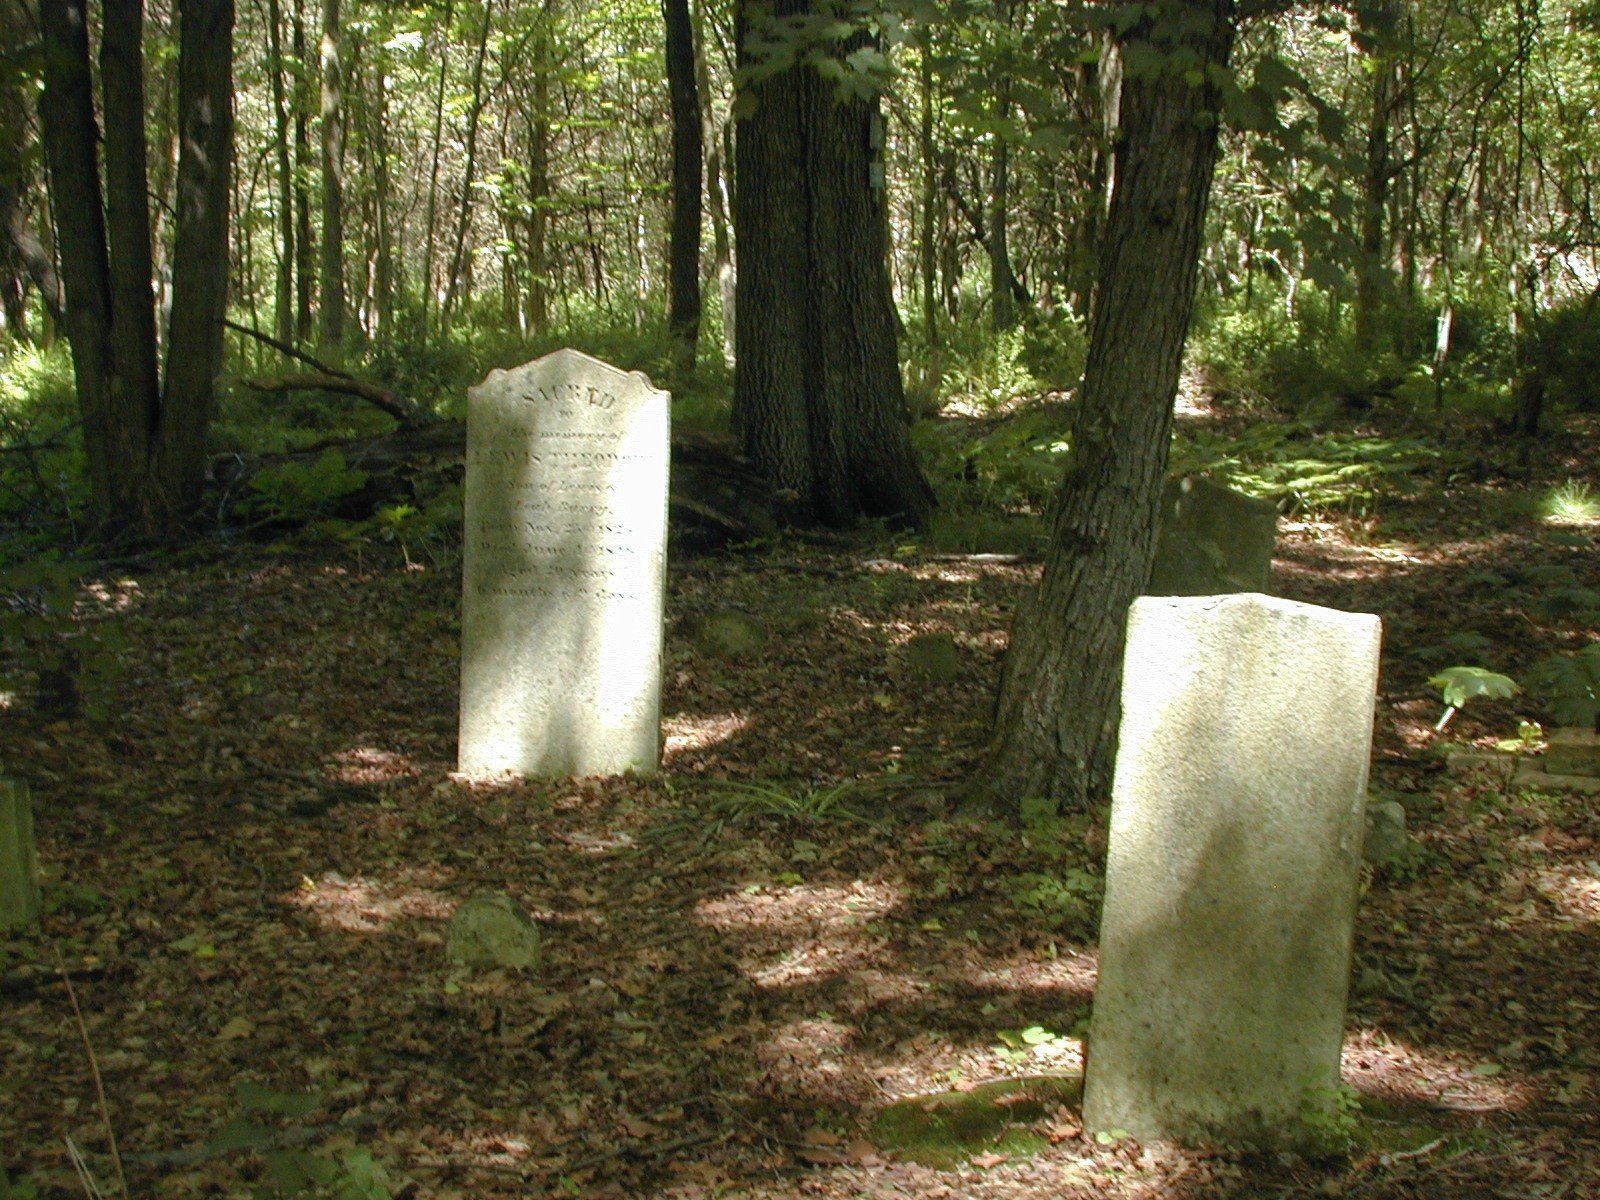 The stones of John Depue and Louis Barry